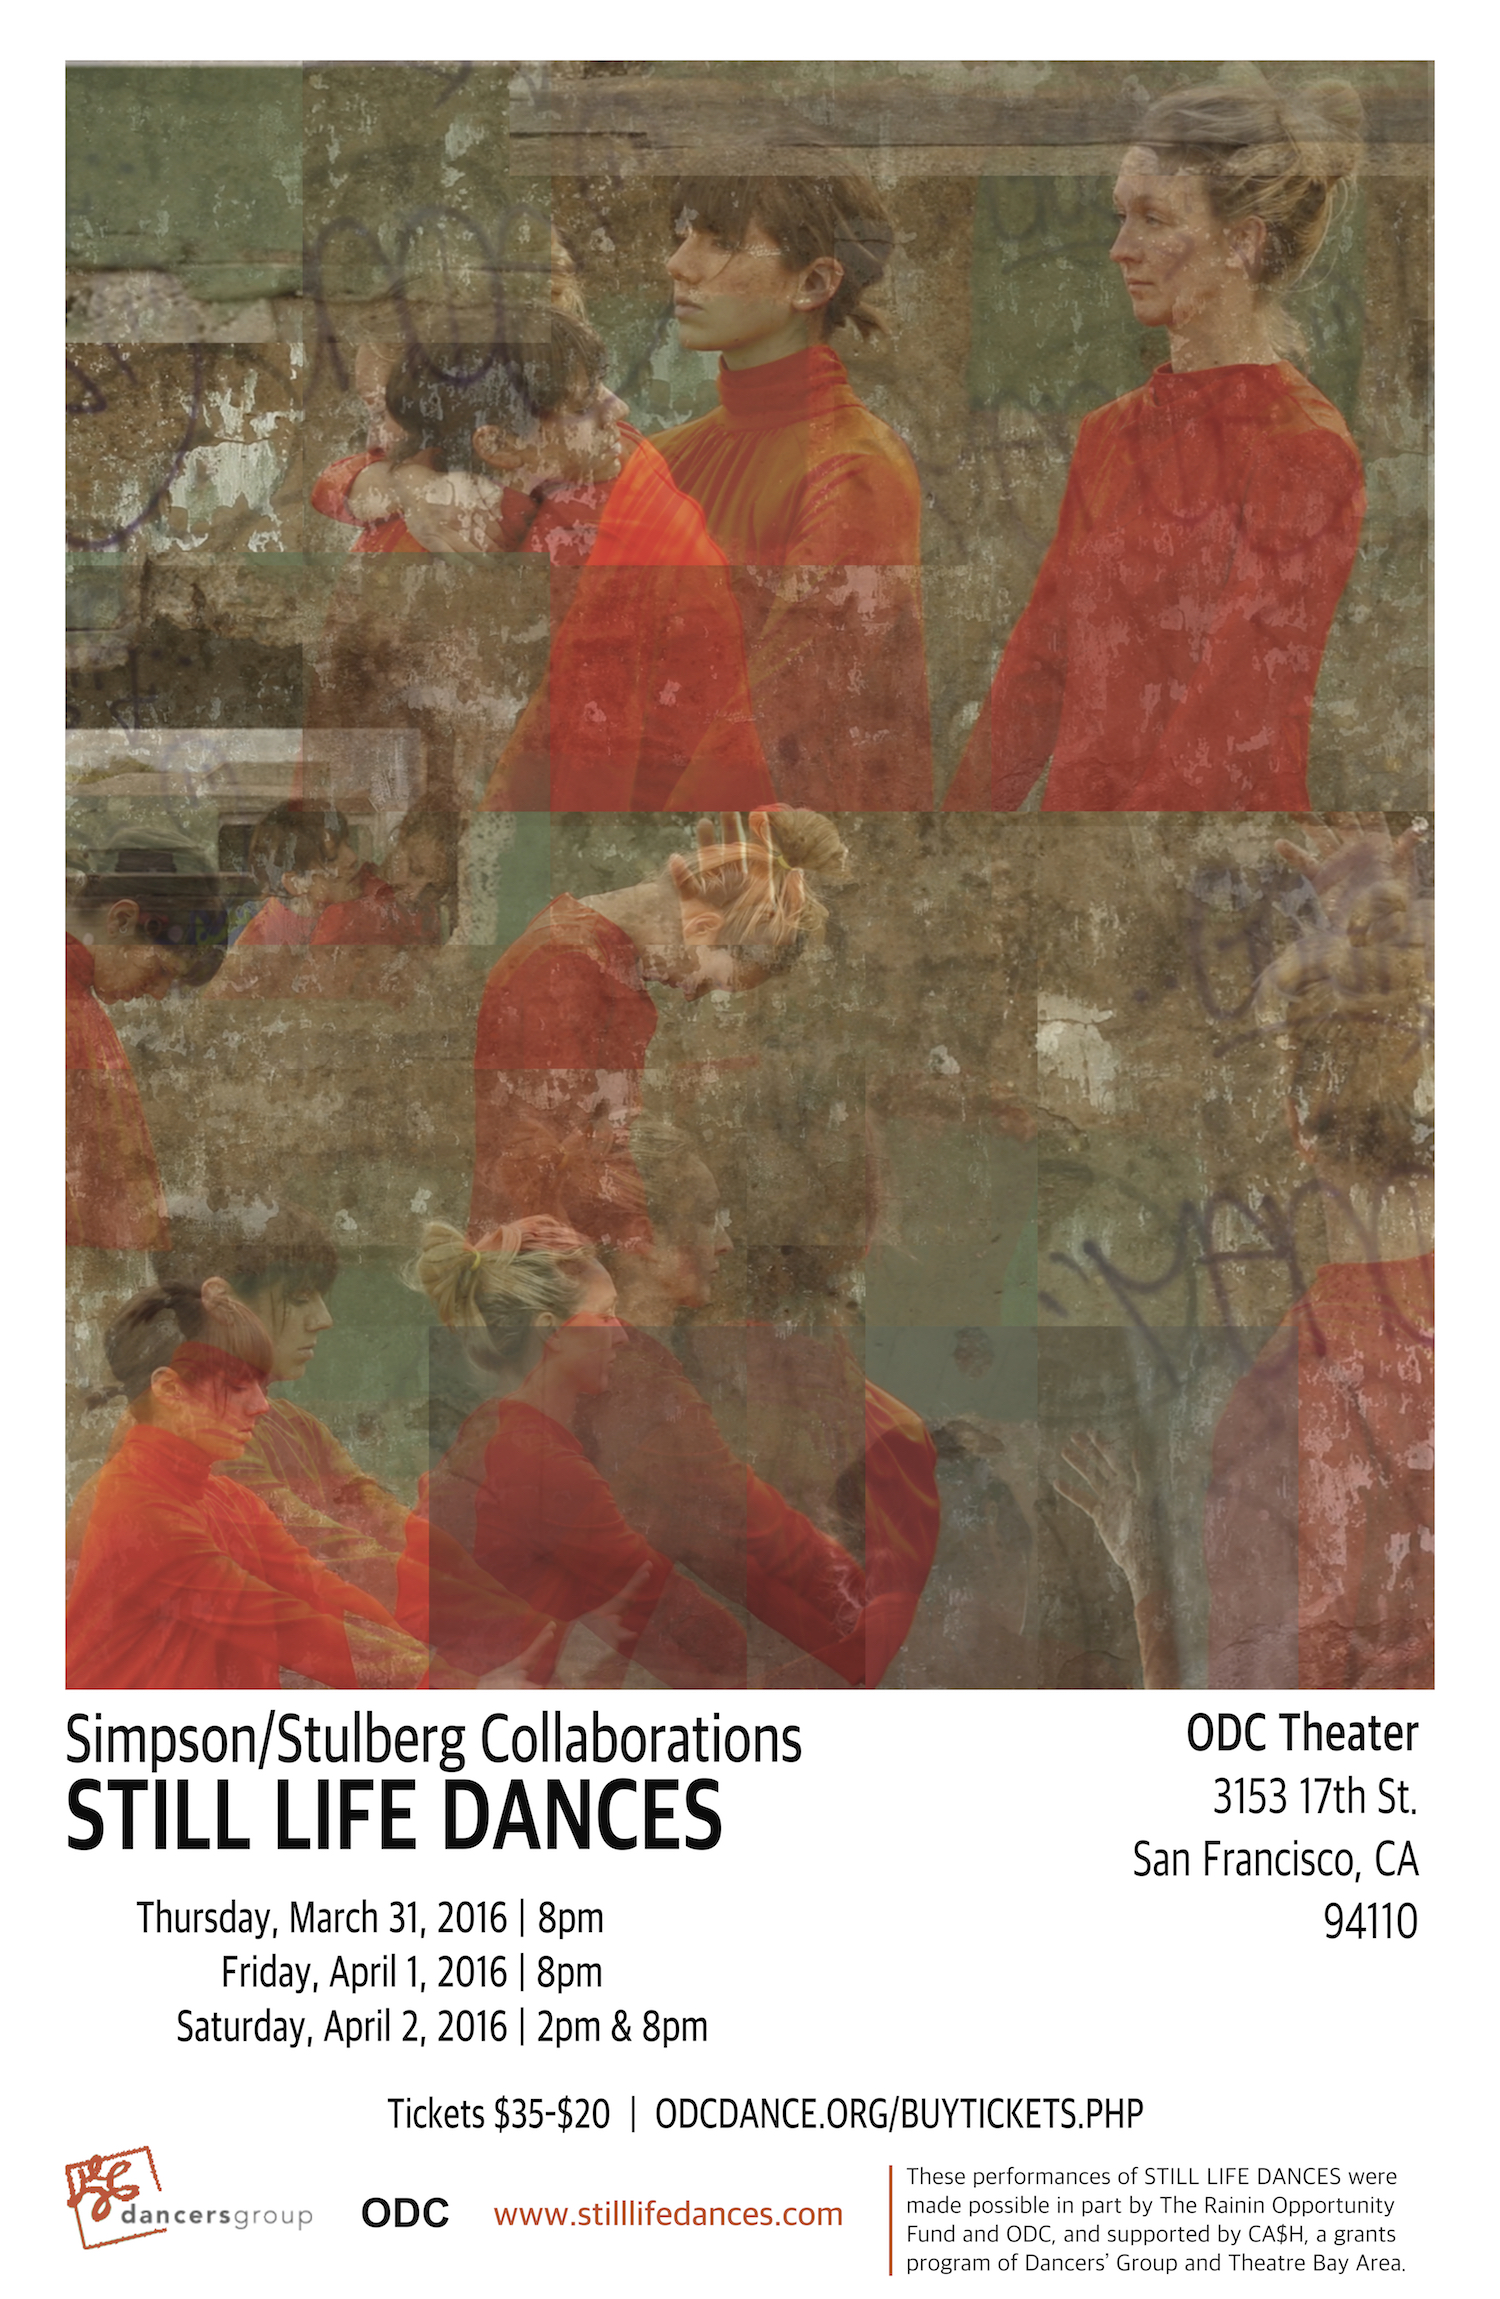 """Promotional poster for SSC's self produced show """"Still Life Dances"""" at ODC Theater, spring 2016."""